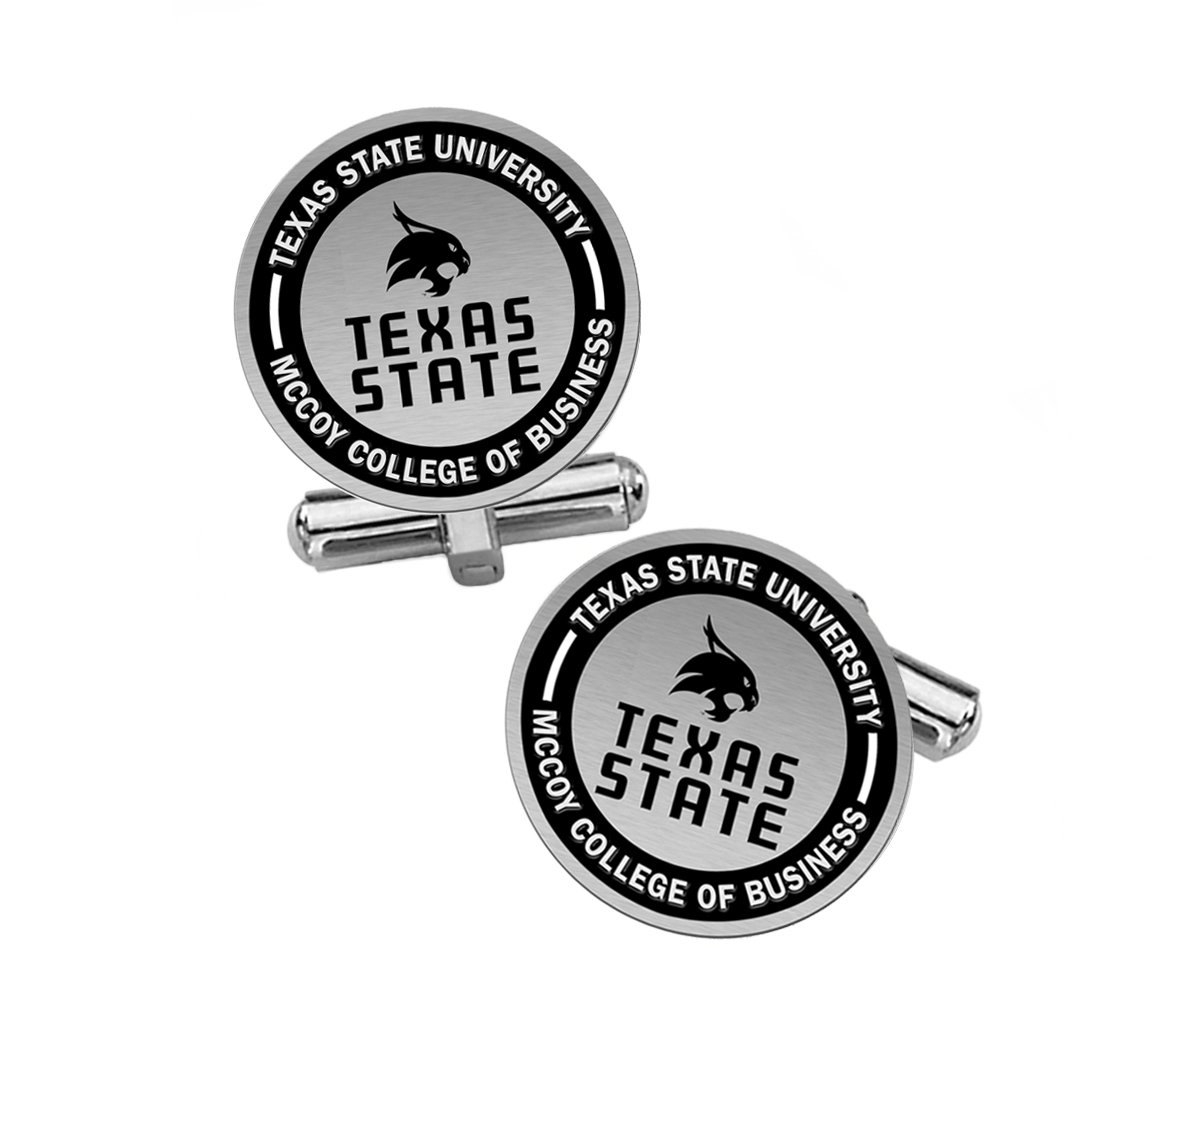 McCoy College of Business Cuff Links | Texas State University by College Jewelry (Image #1)